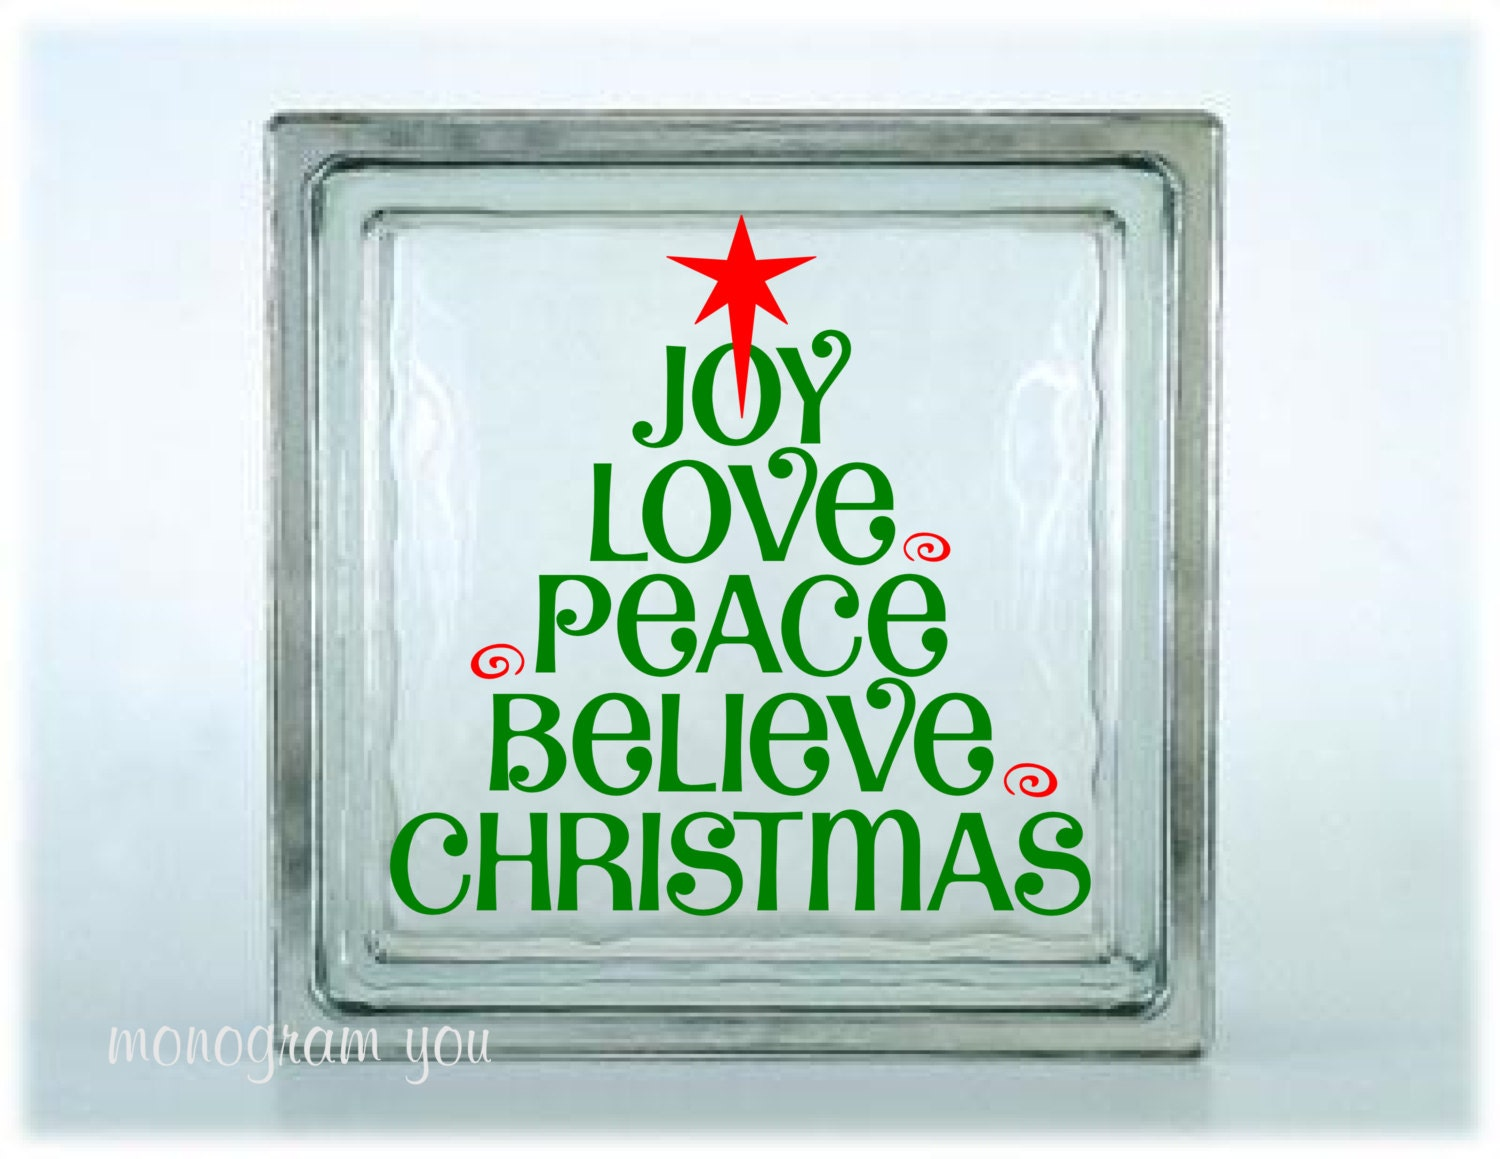 Christmas Glass Block Decal Christmas Vinyl Decal Joy Love - How to make vinyl decals for glass blocks